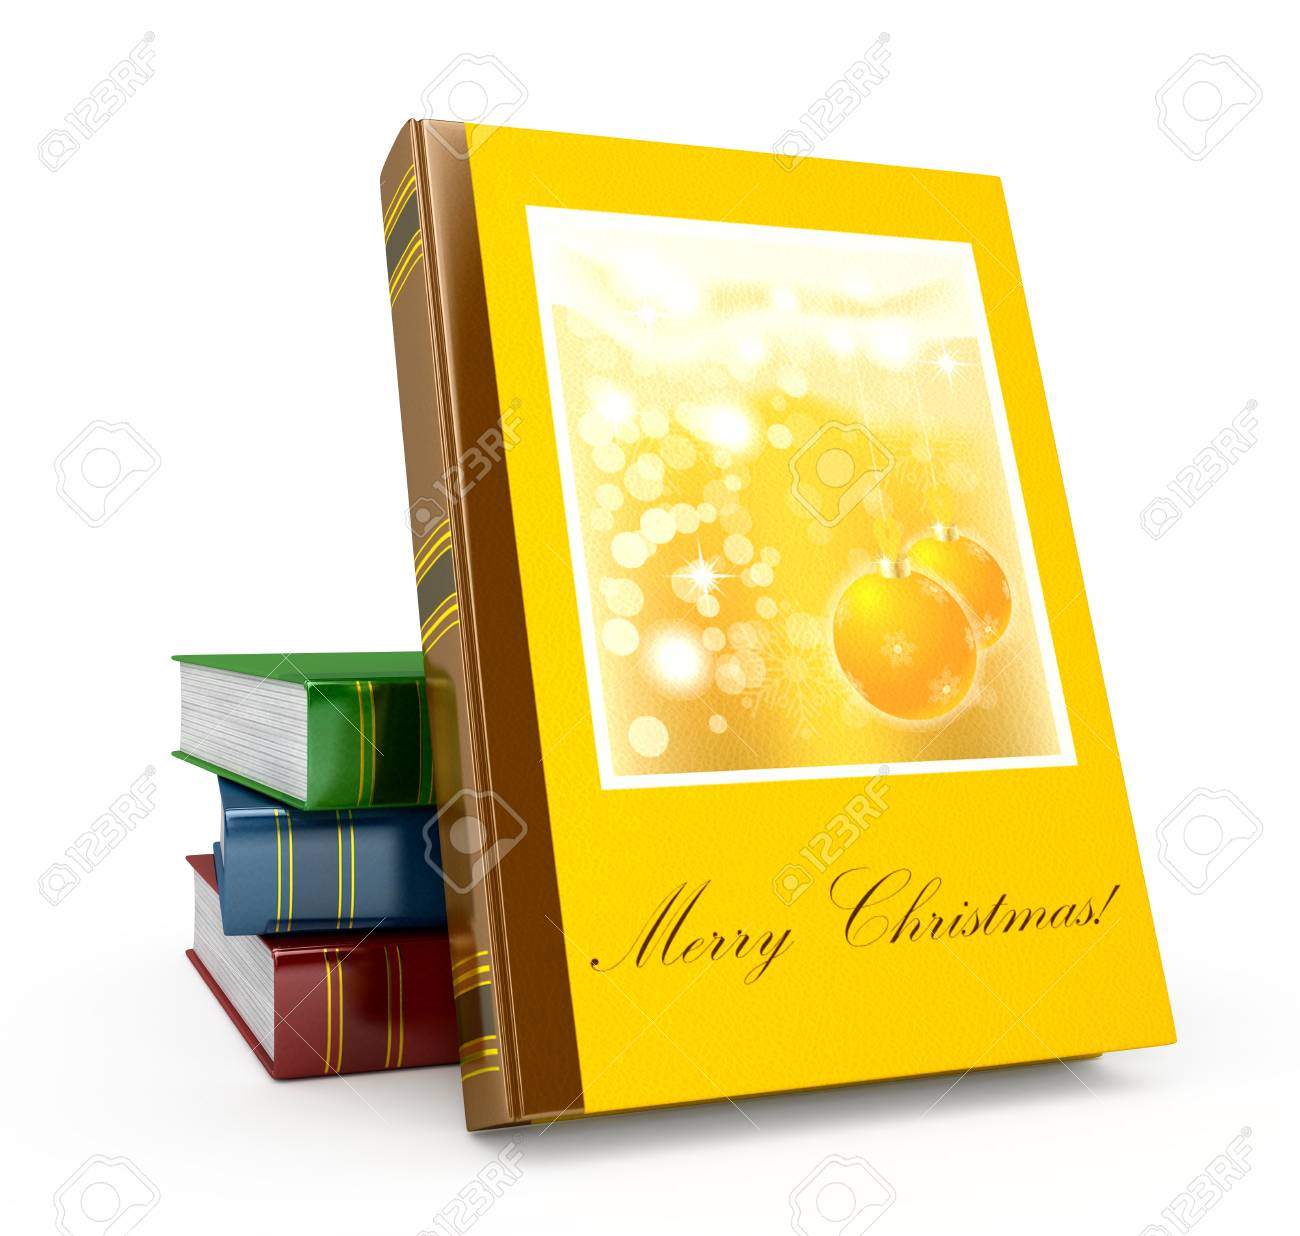 3d render christmas book on a white background Stock Photo - 14796036